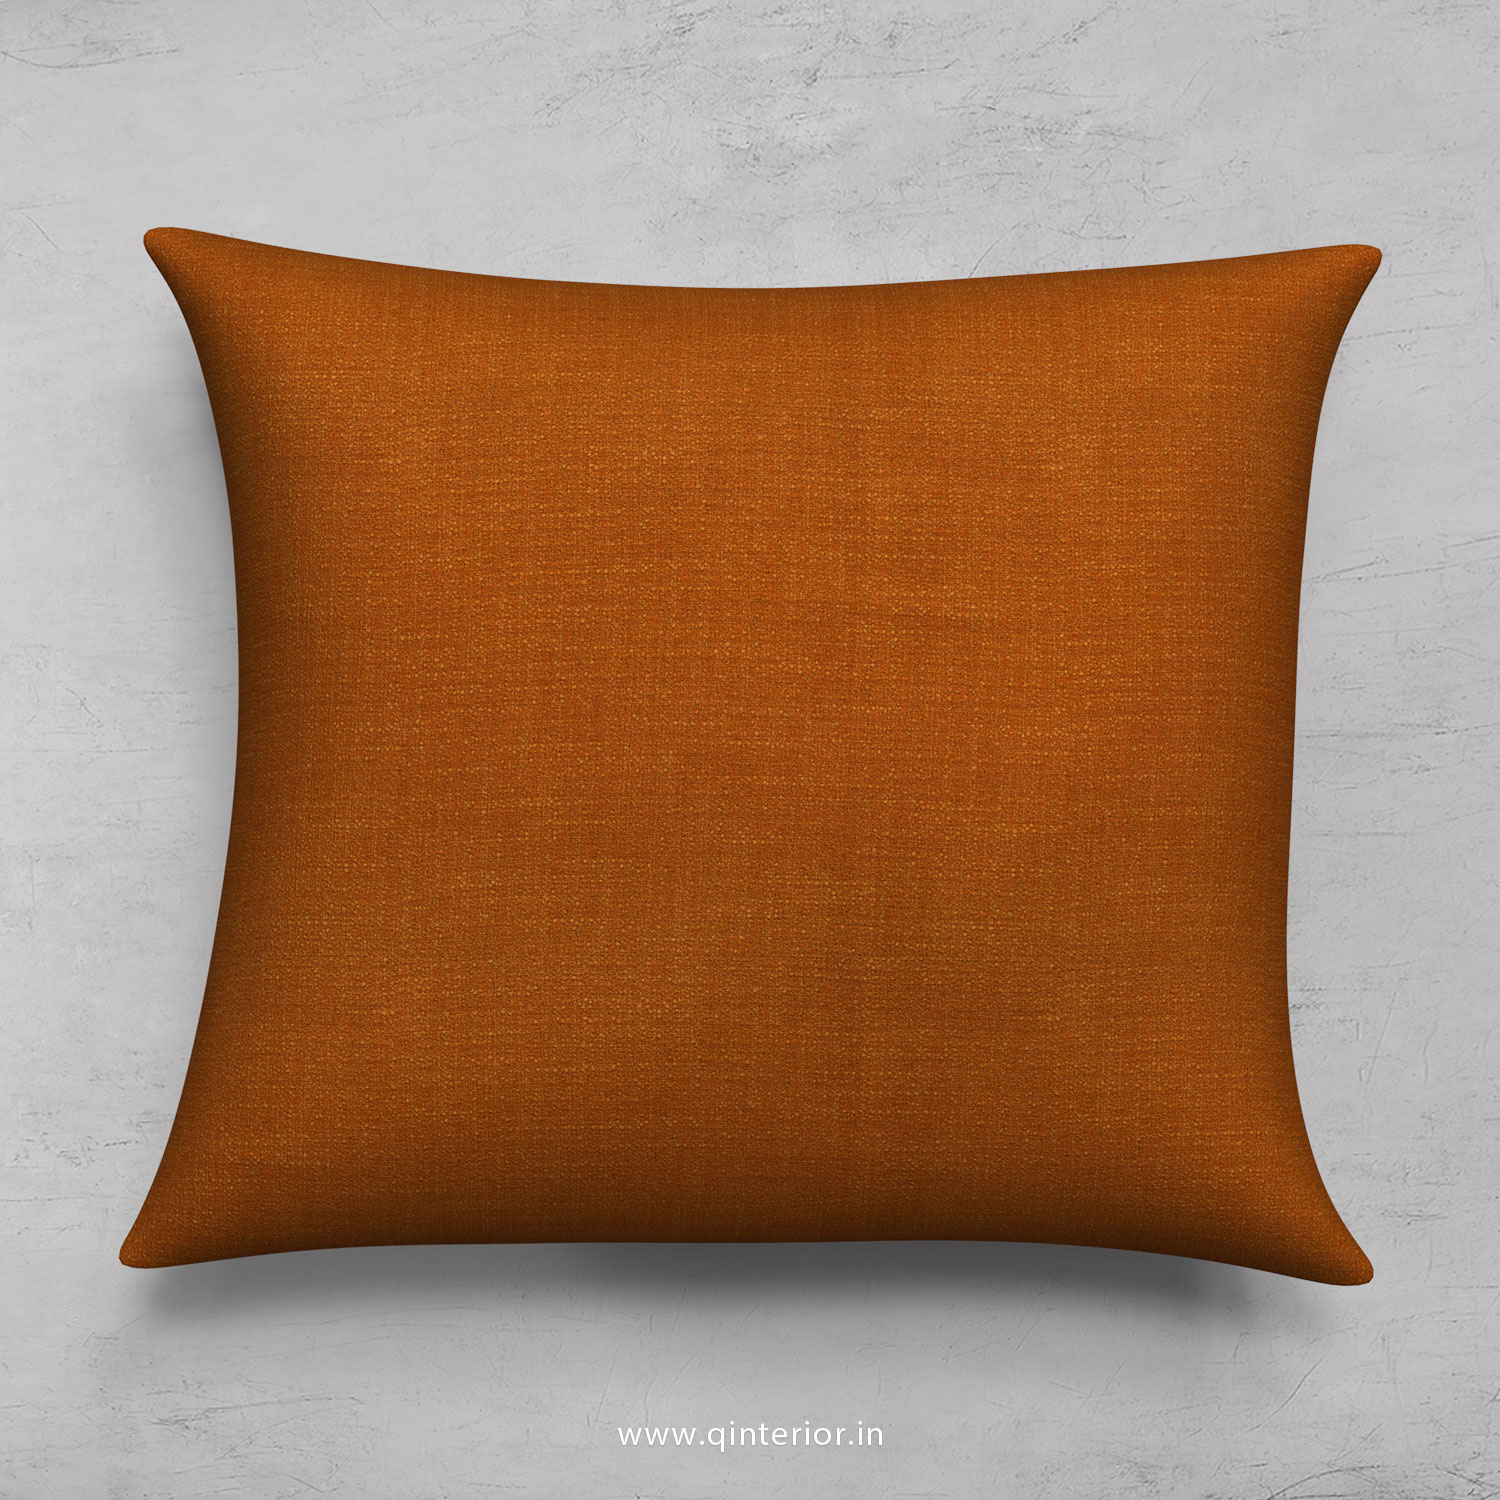 Cushion With Cushion Cover in Bargello- CUS001 BG02